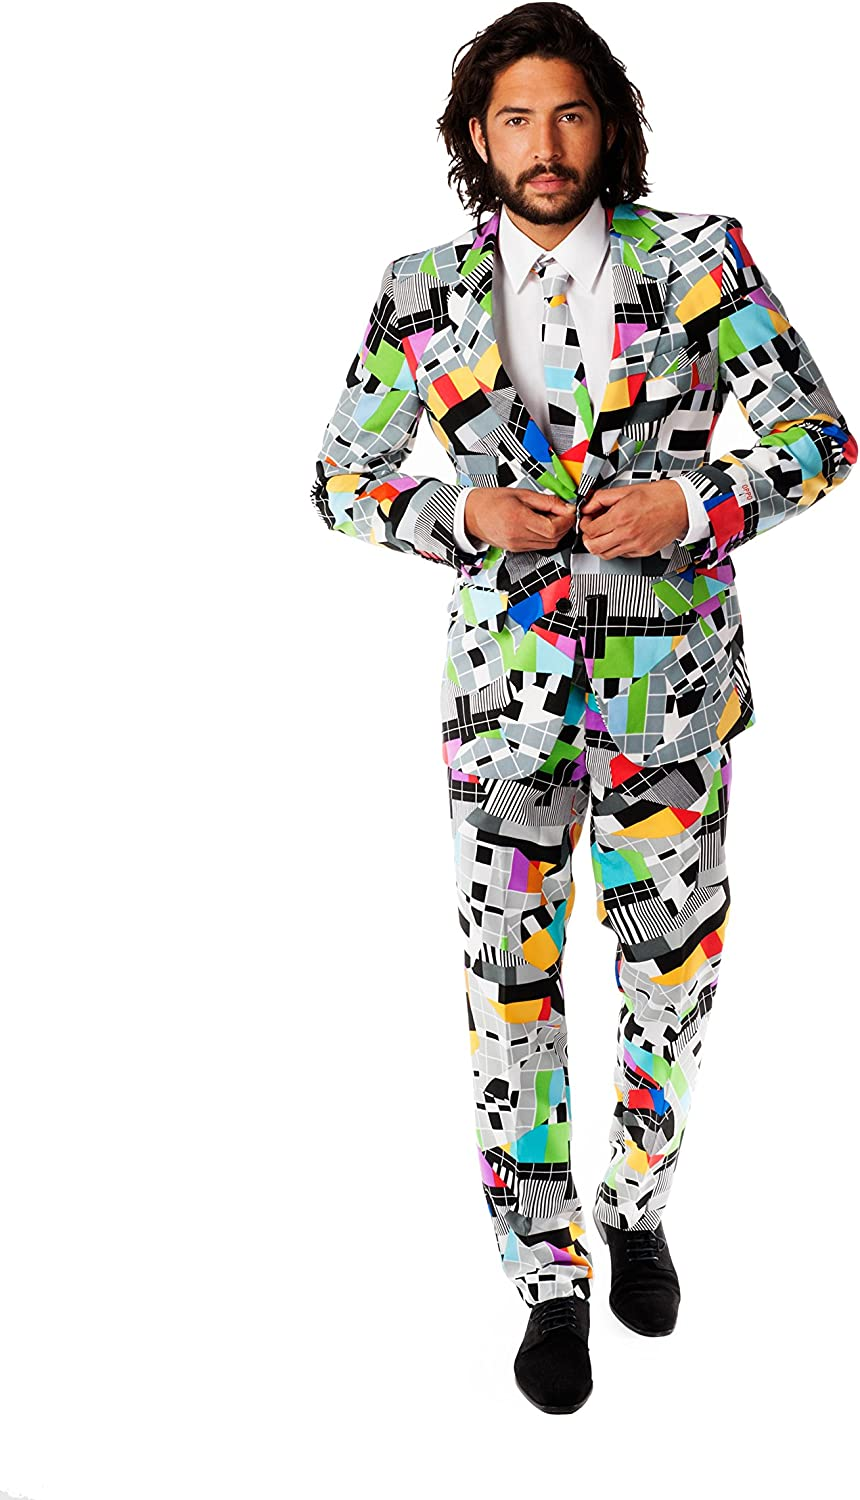 Men's Vintage Style Suits, Classic Suits Opposuits Mens Party Costume Suits $59.99 AT vintagedancer.com